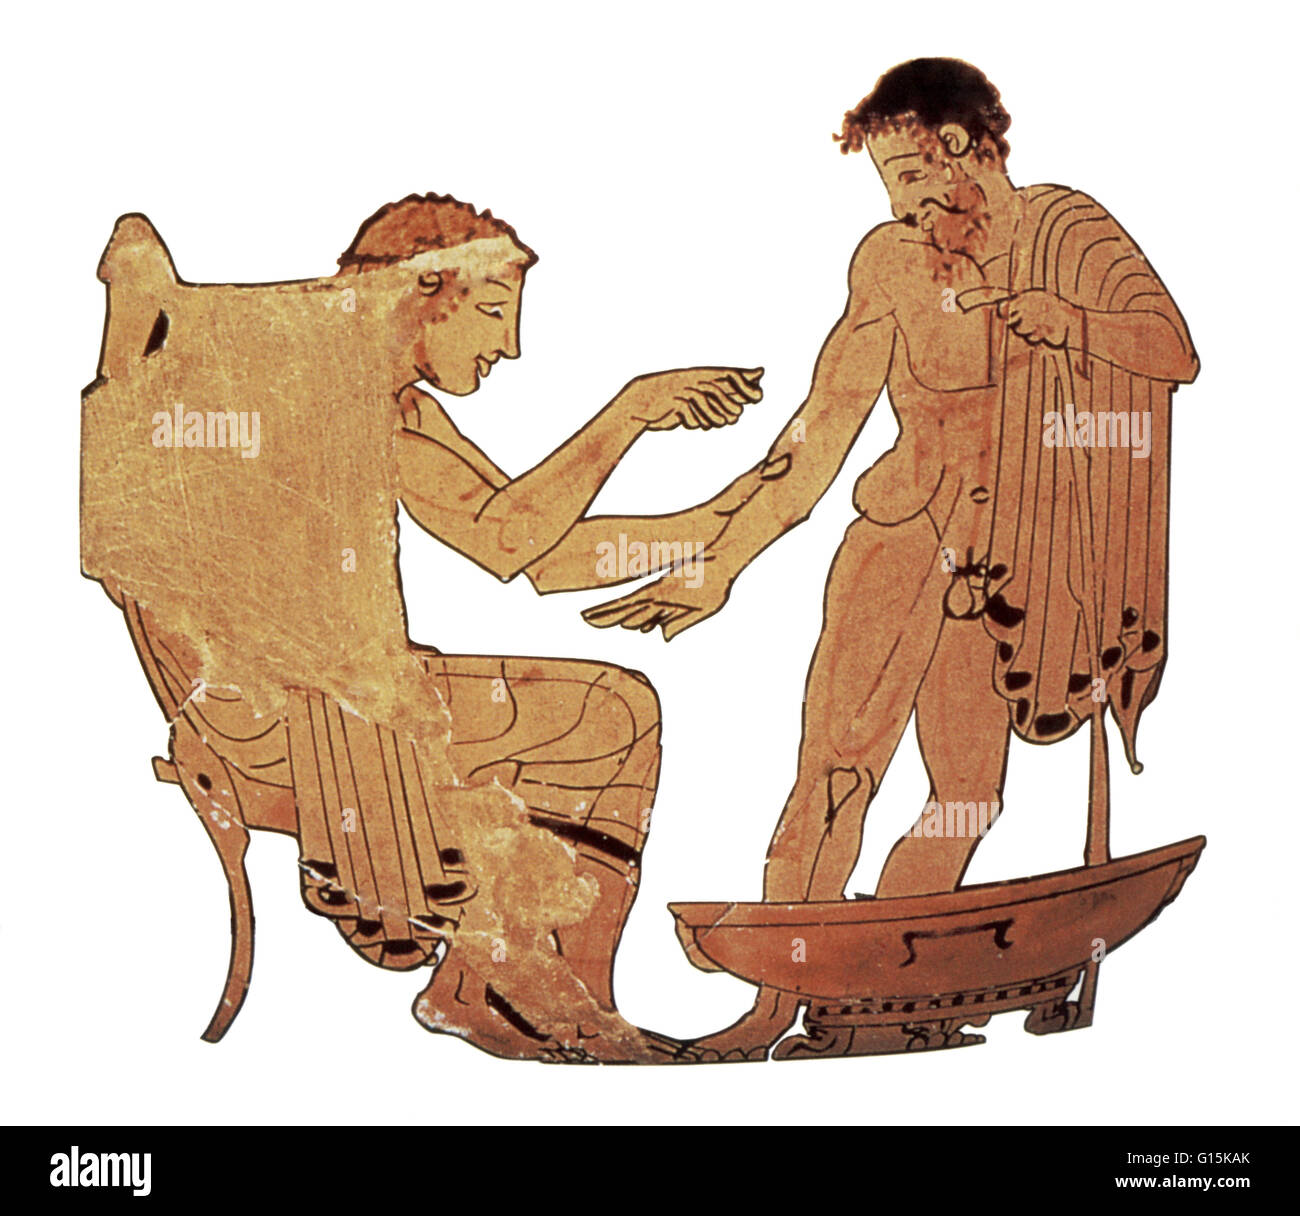 An Ancient Greek physician, with a scalpel, letting blood from a patient. Bloodletting was often used as a cure - Stock Image